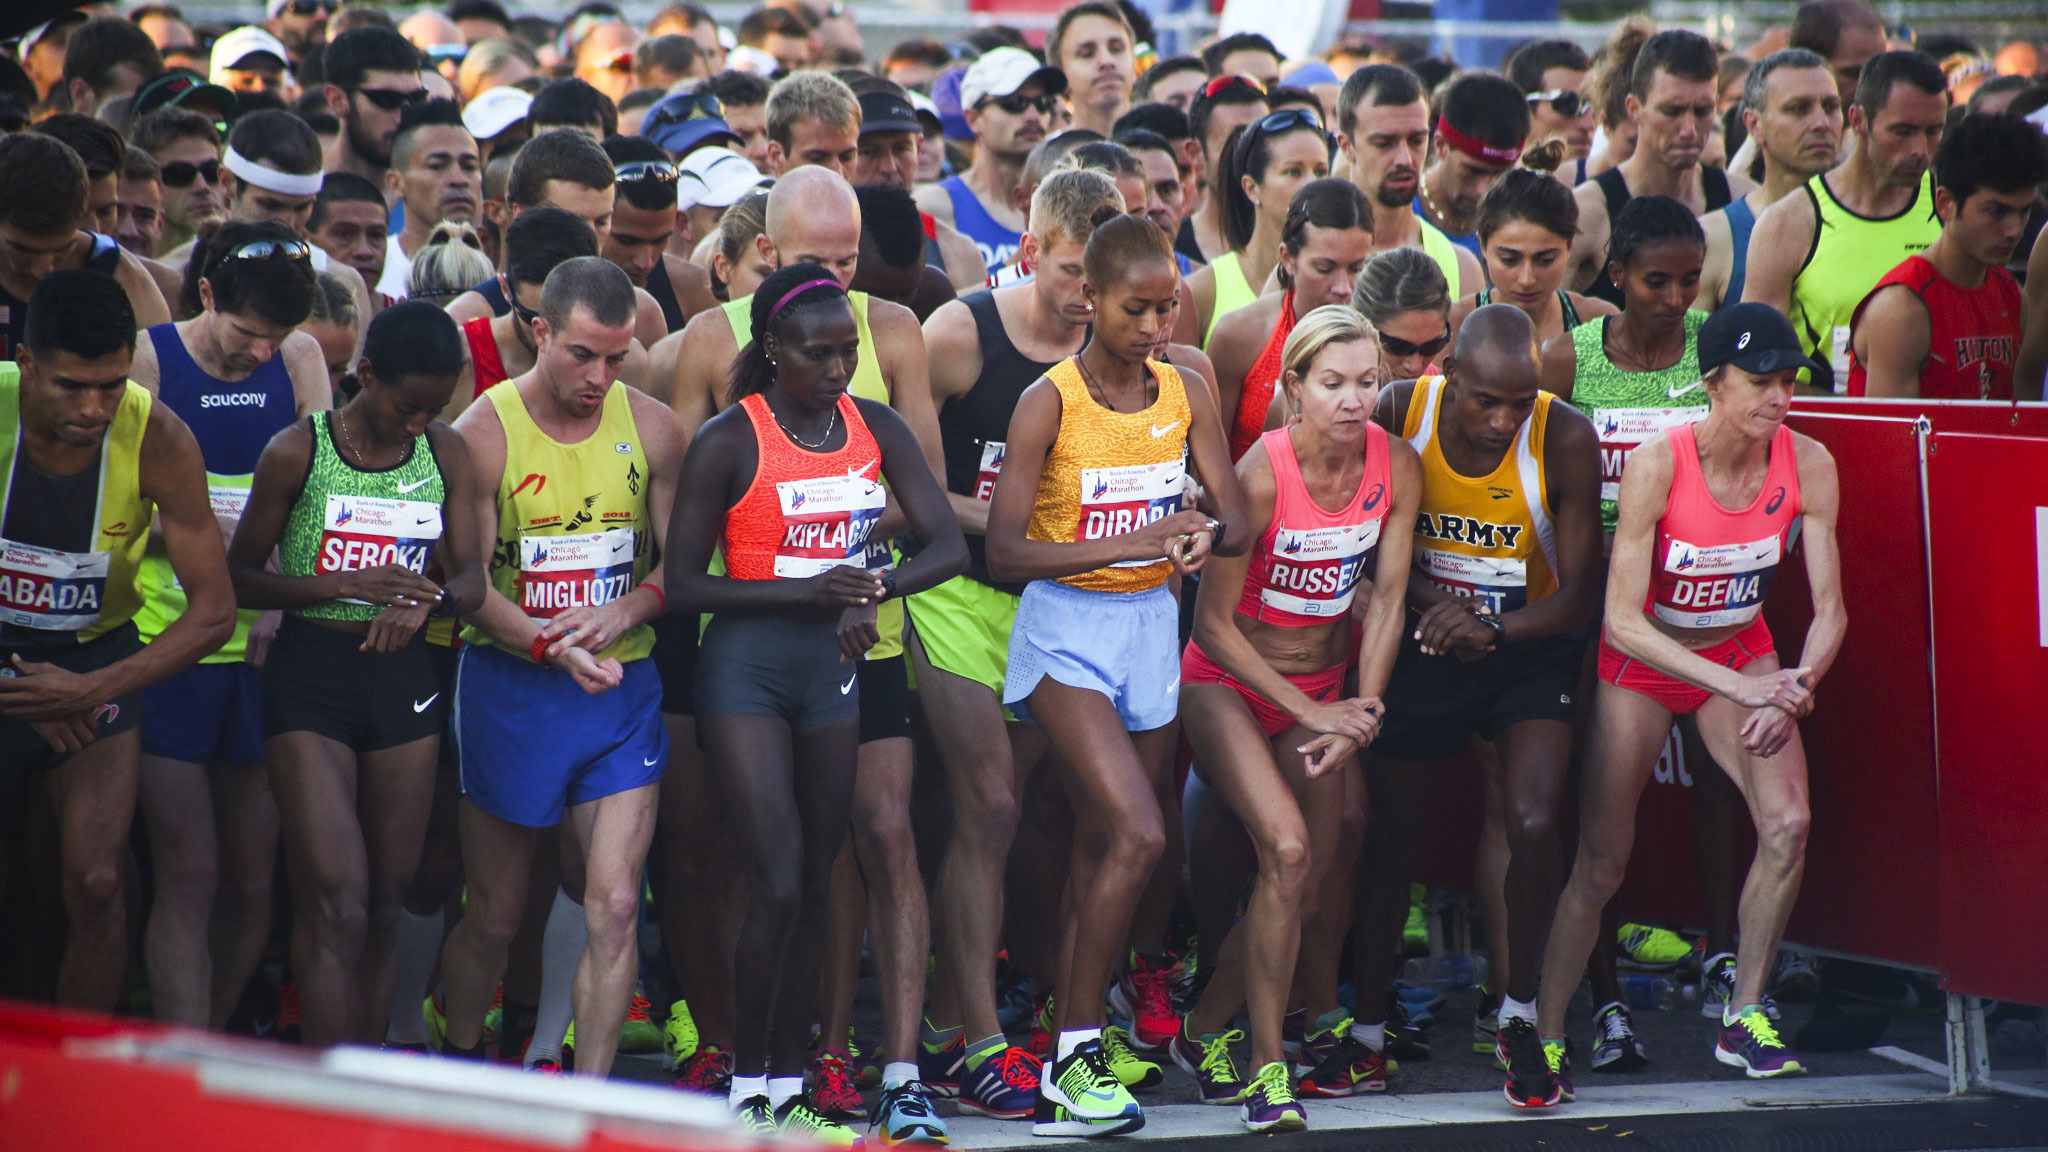 Starting and finishing at the 2015 Chicago Marathon